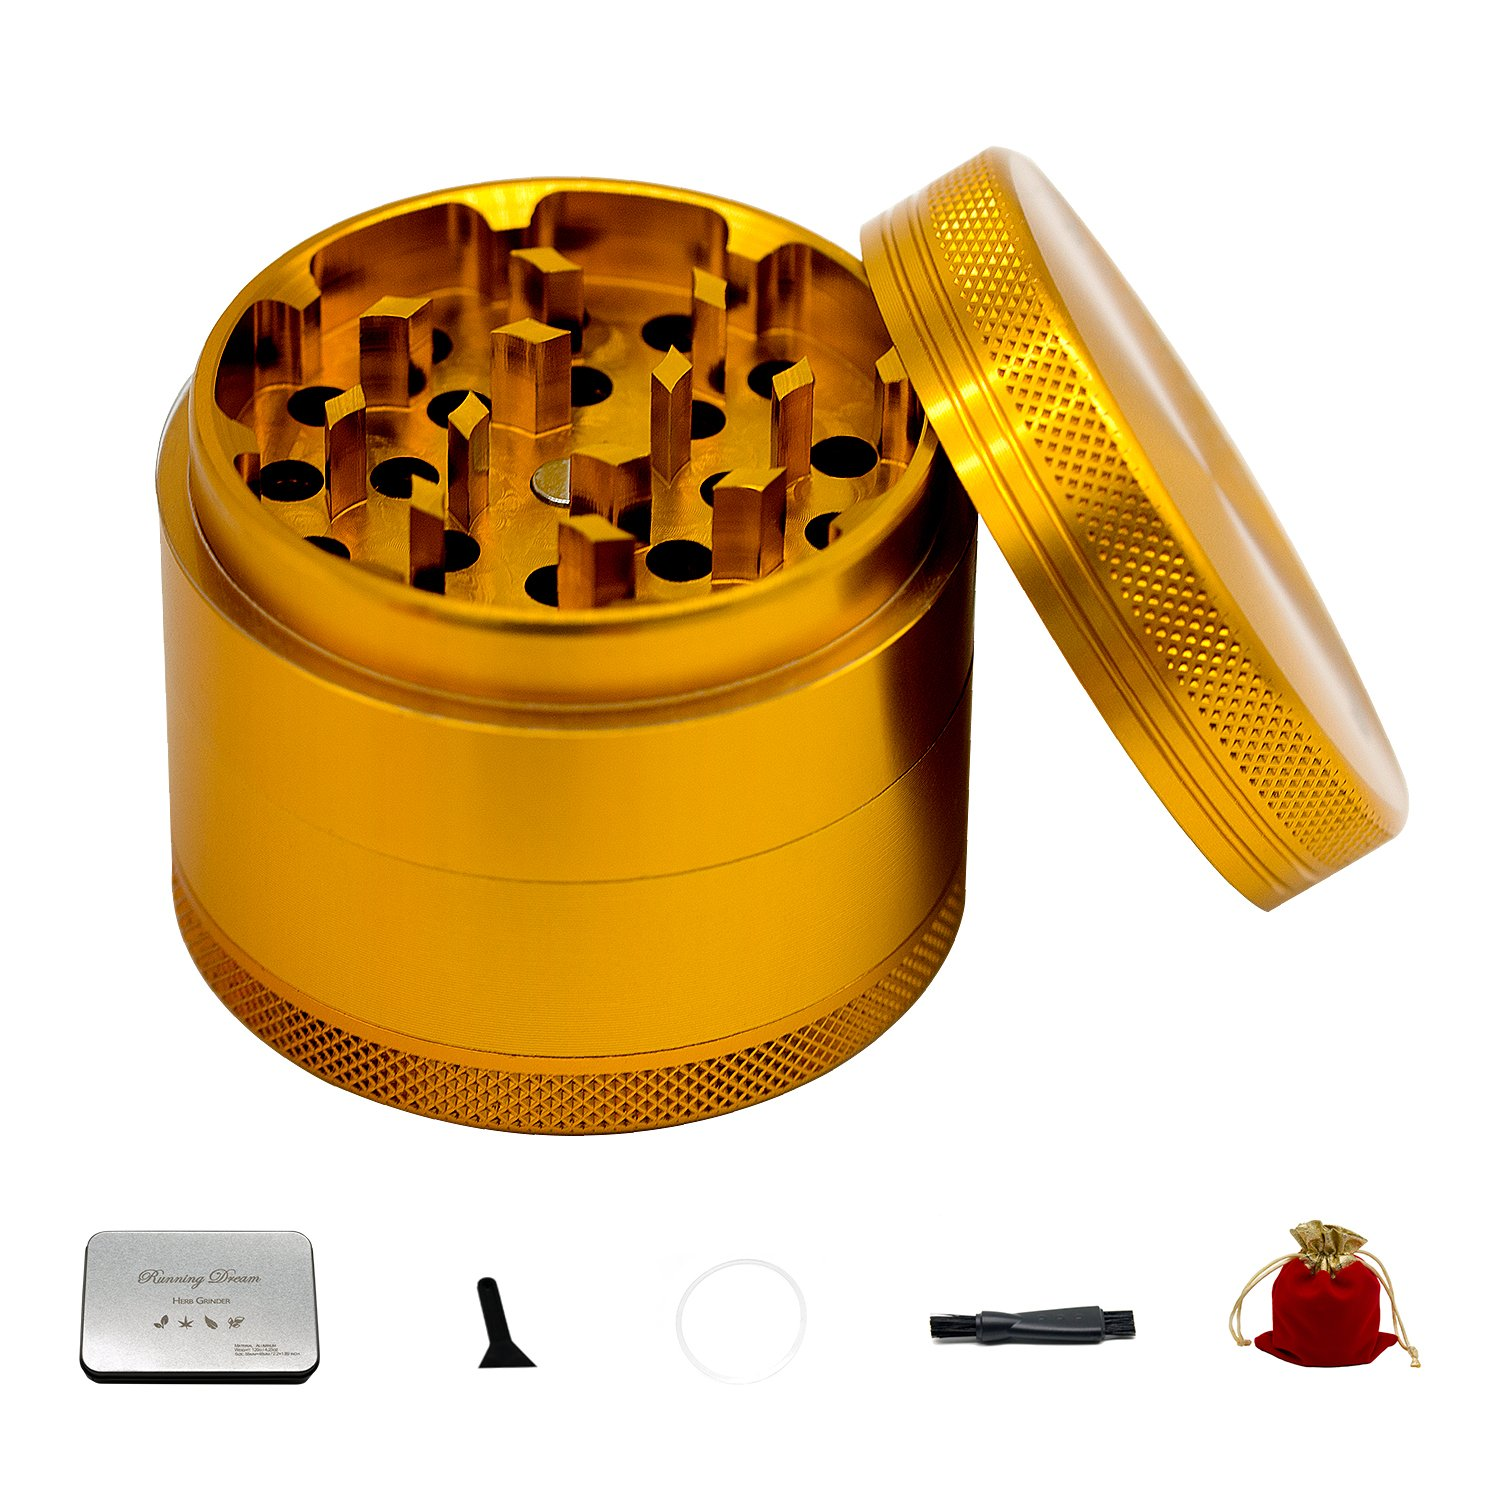 Running Dream Grinders 4-Piece Anodized Aluminum Herb Grinder with Pollen Catcher (2.2''-Gold Grinders)